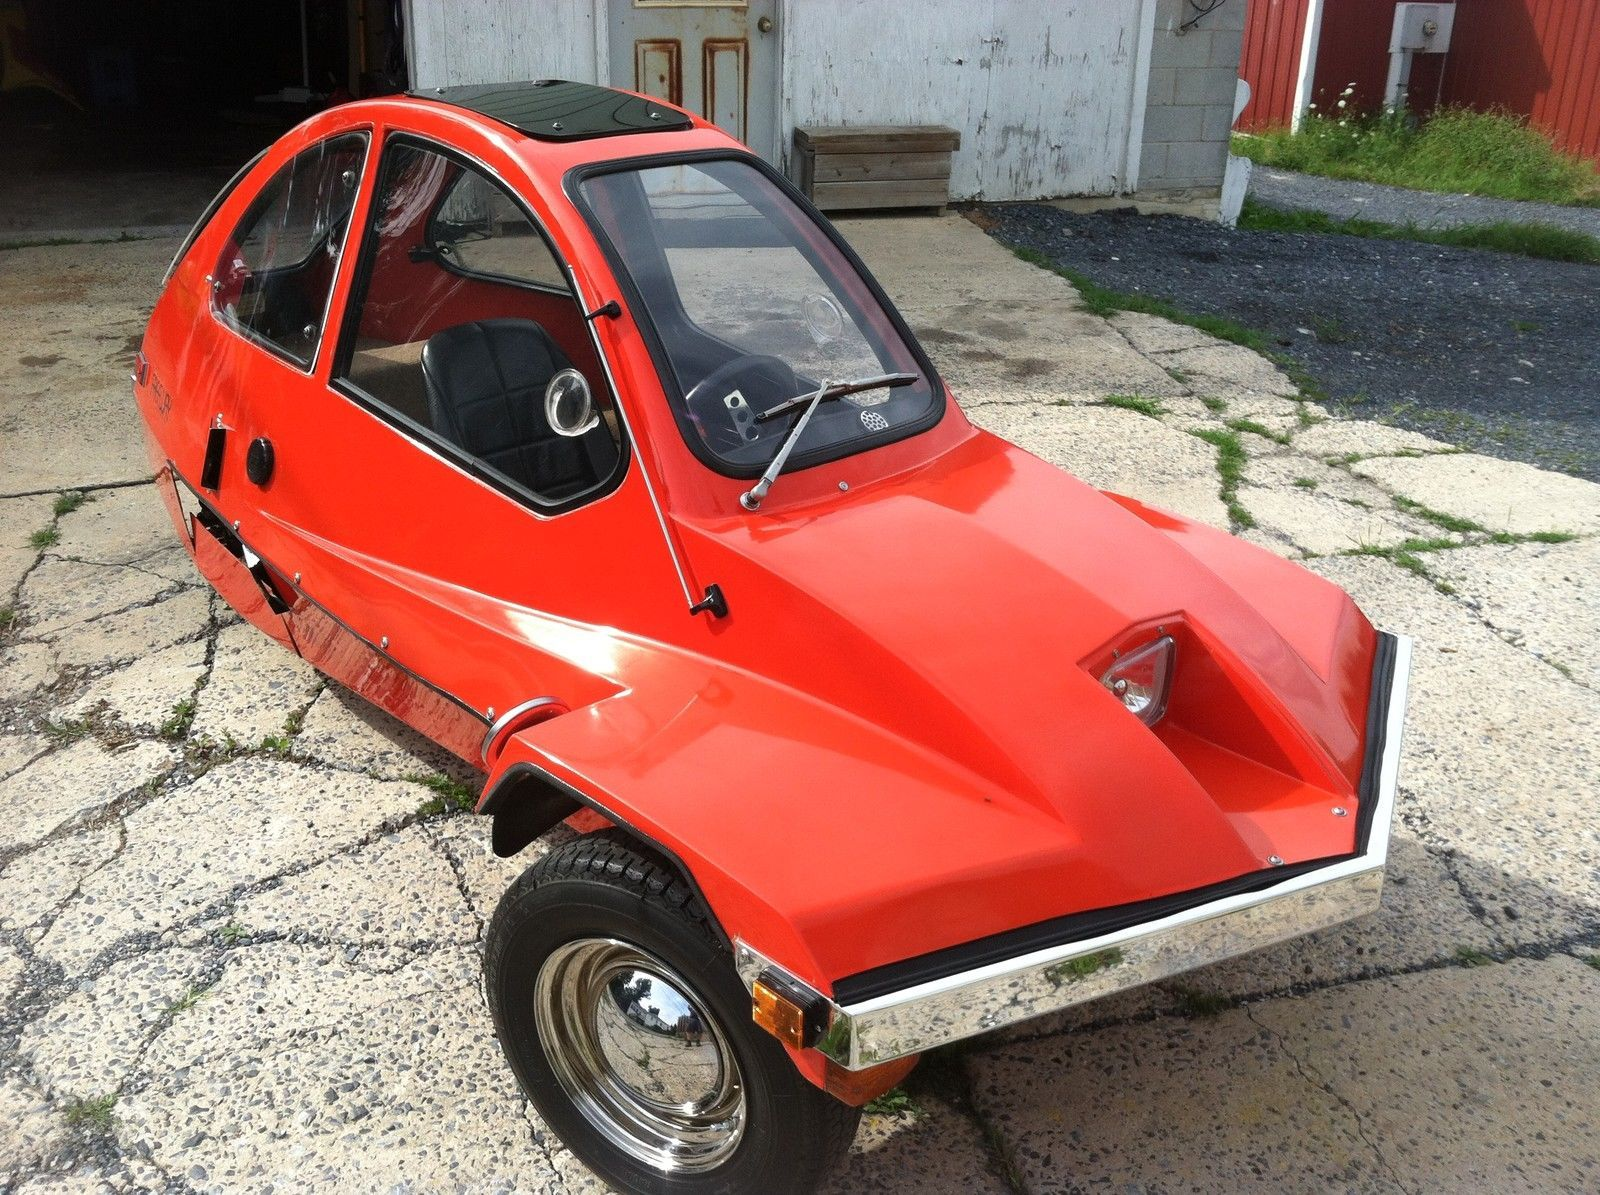 1981 Hmv Free Way With Images Cycle Car Reverse Trike Classic Motorcycles